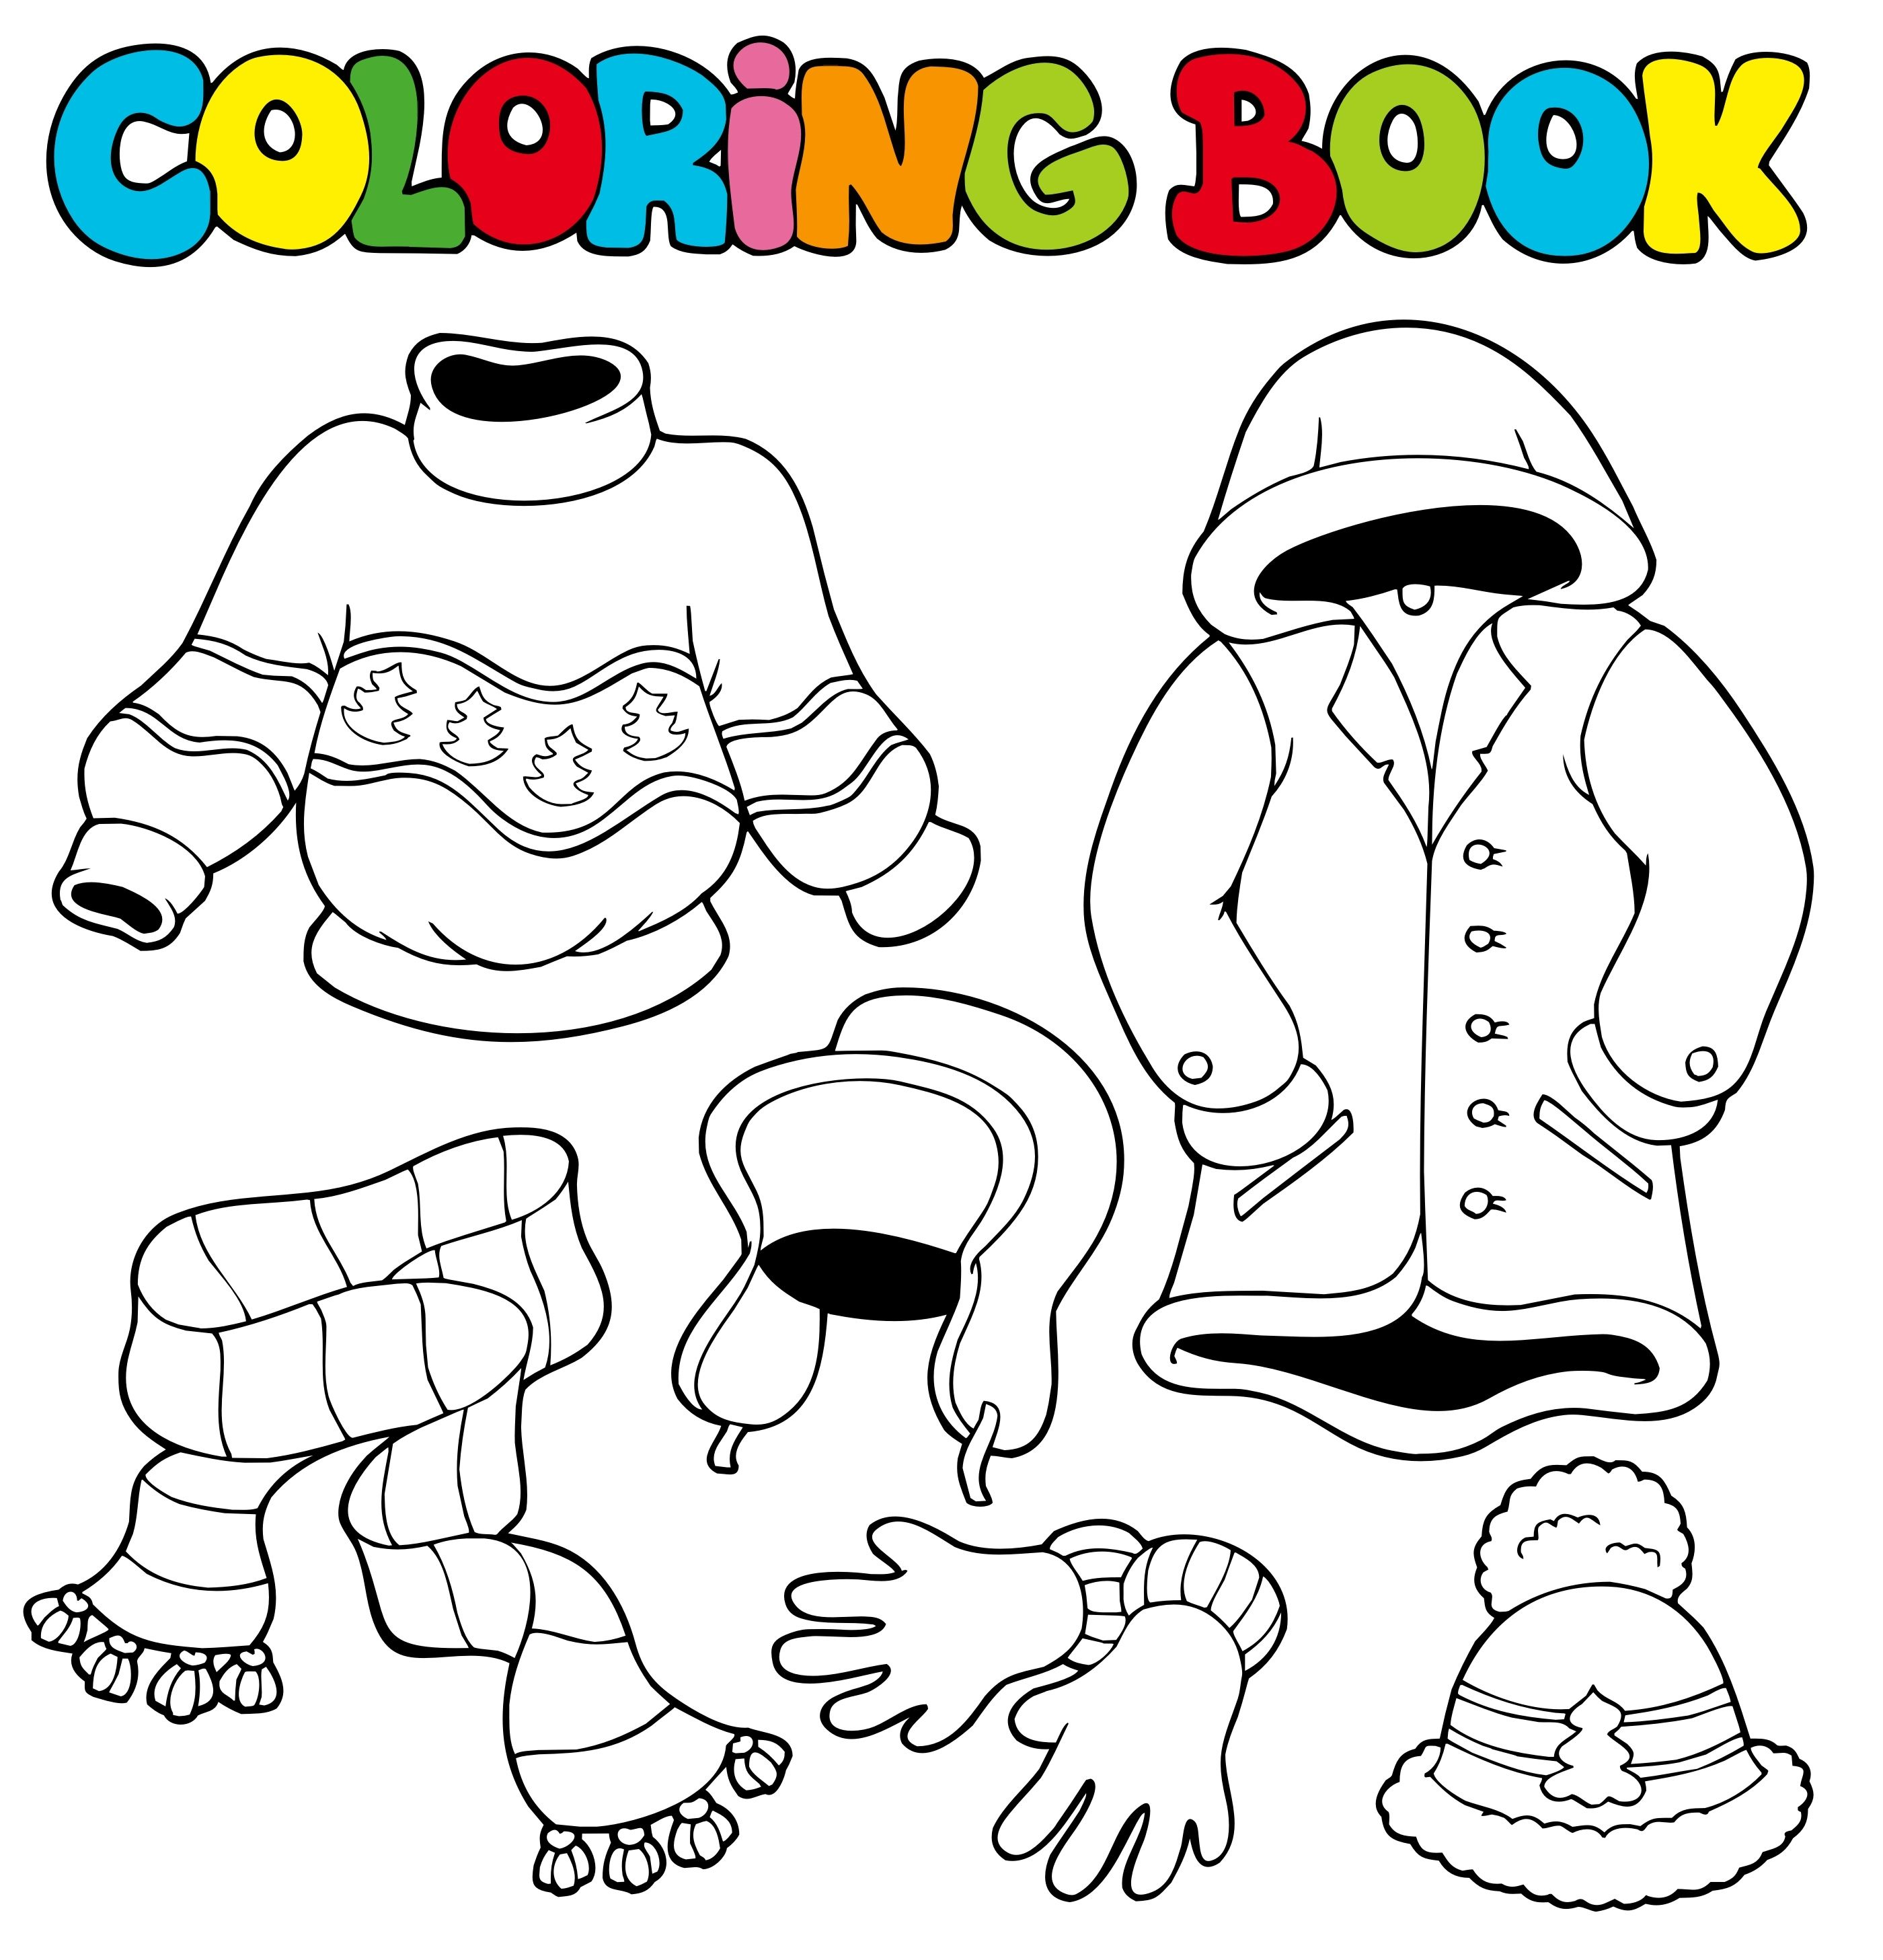 Summer clothes coloring pages - 4 Seasons Coloring Pages 187 Free Printable Coloring Pages